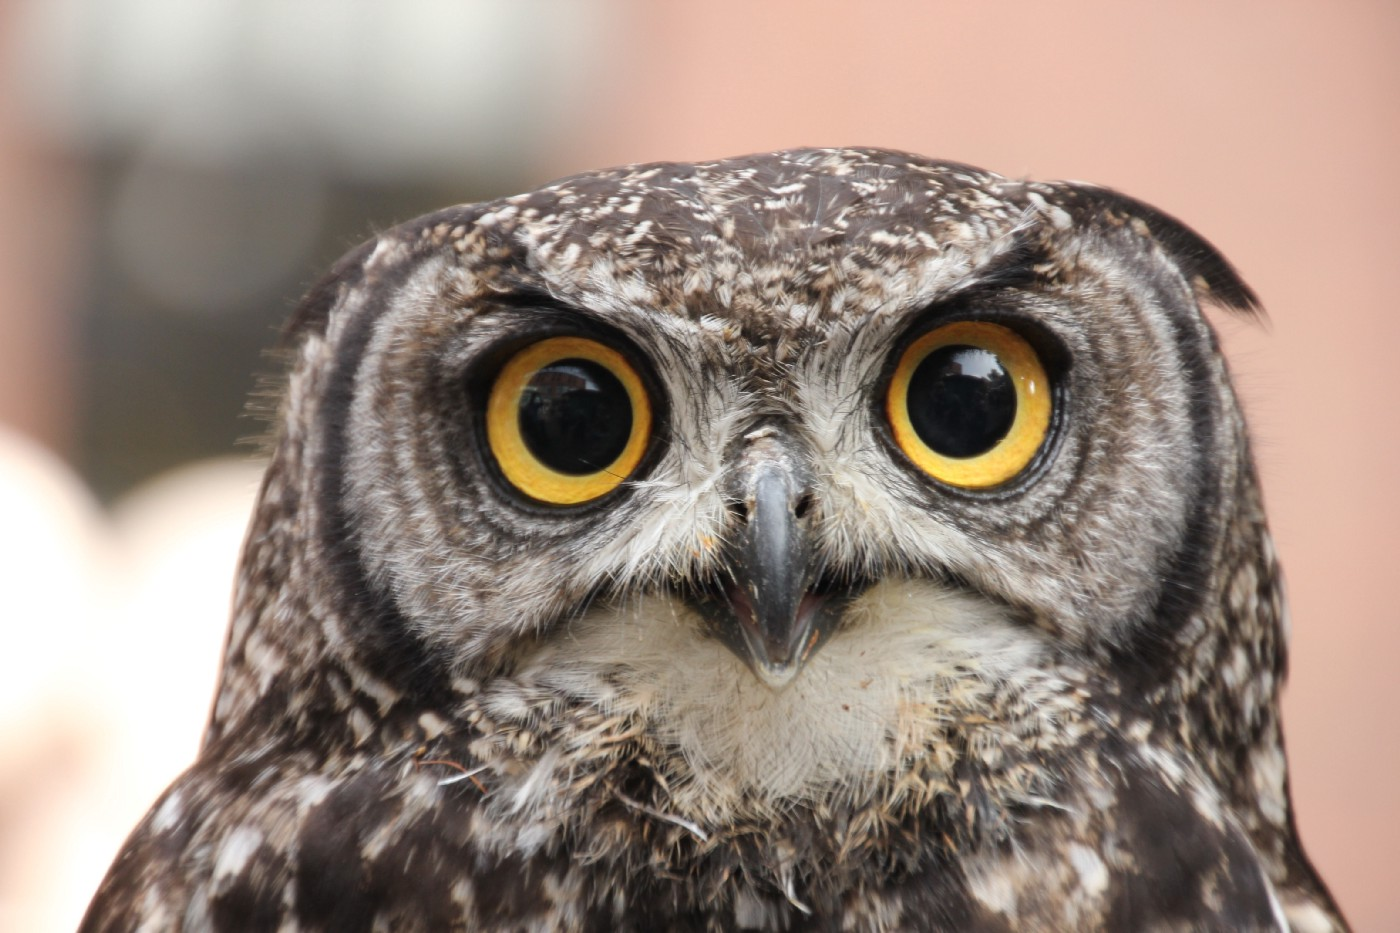 Two yellow eyes of an owl